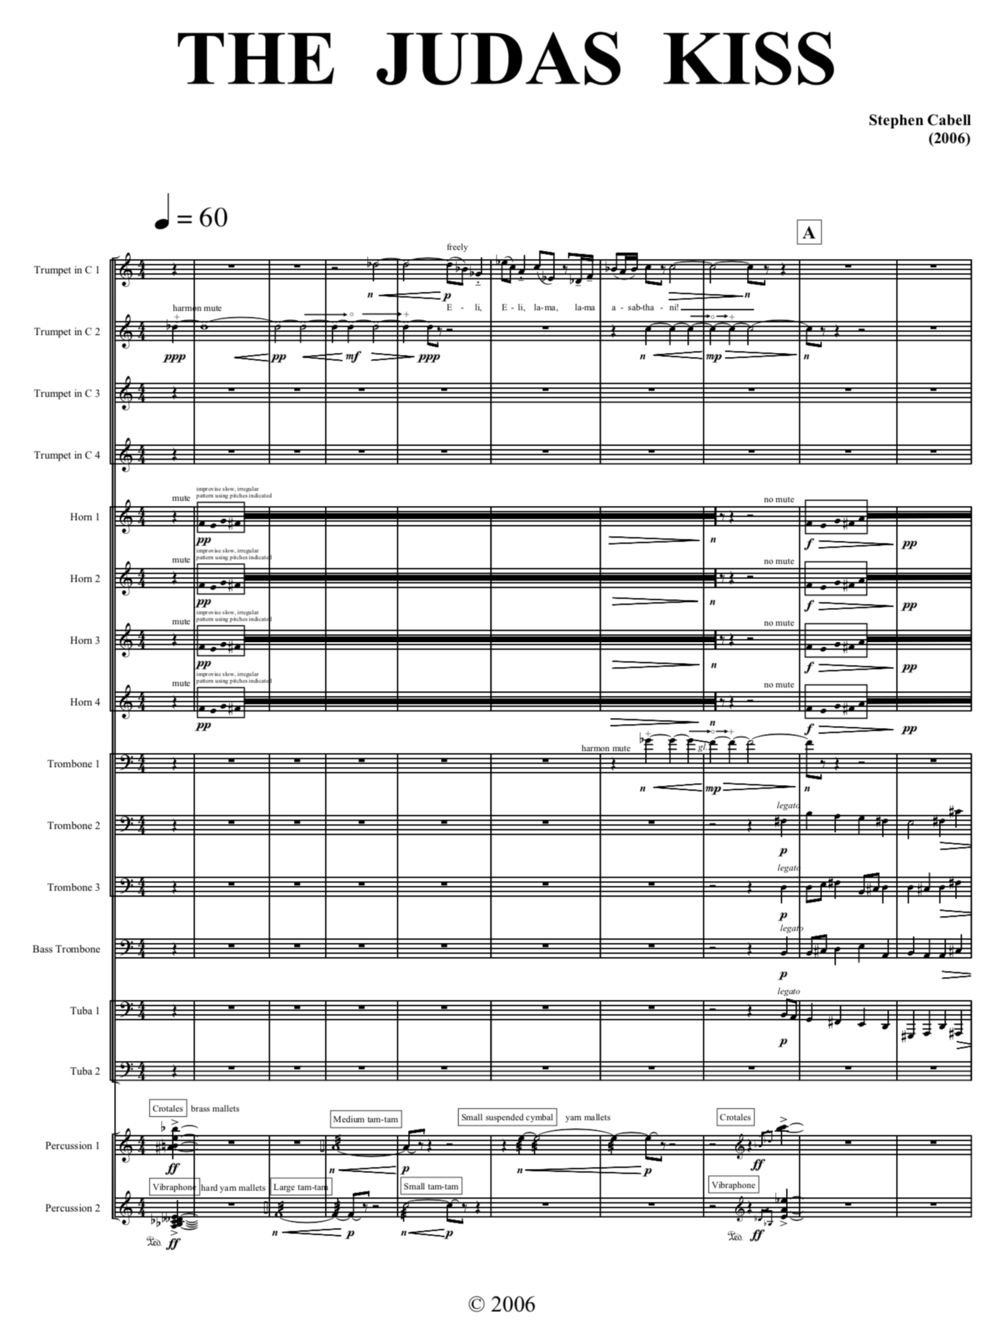 THE JUDAS KISS full score: page 1